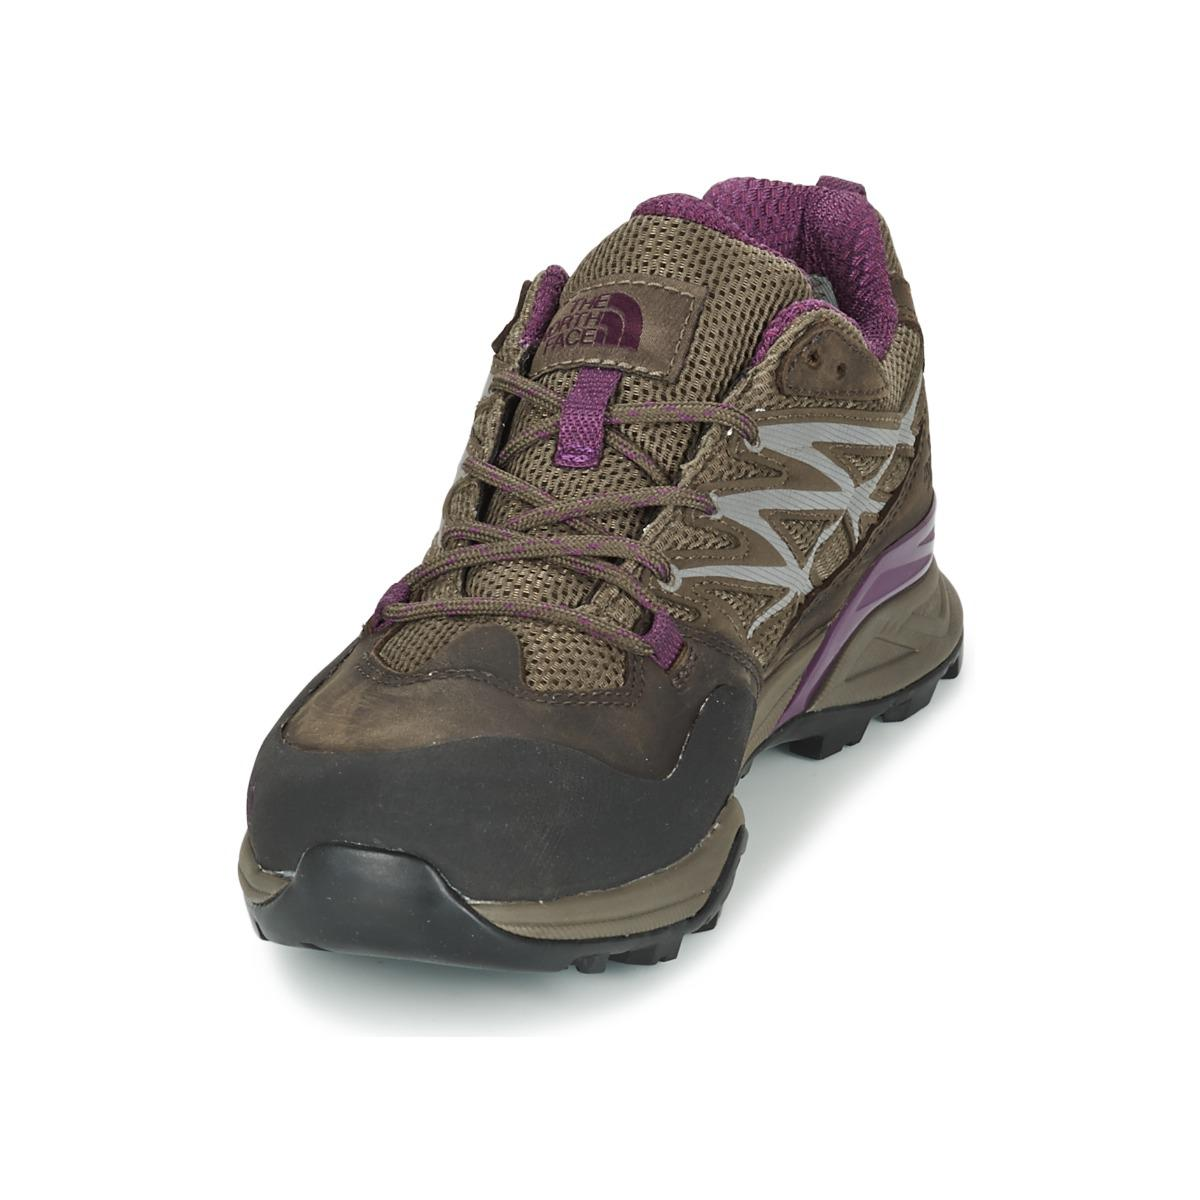 The North Face Leather Hedgehog Hike Goretex Women's Walking Boots In Brown